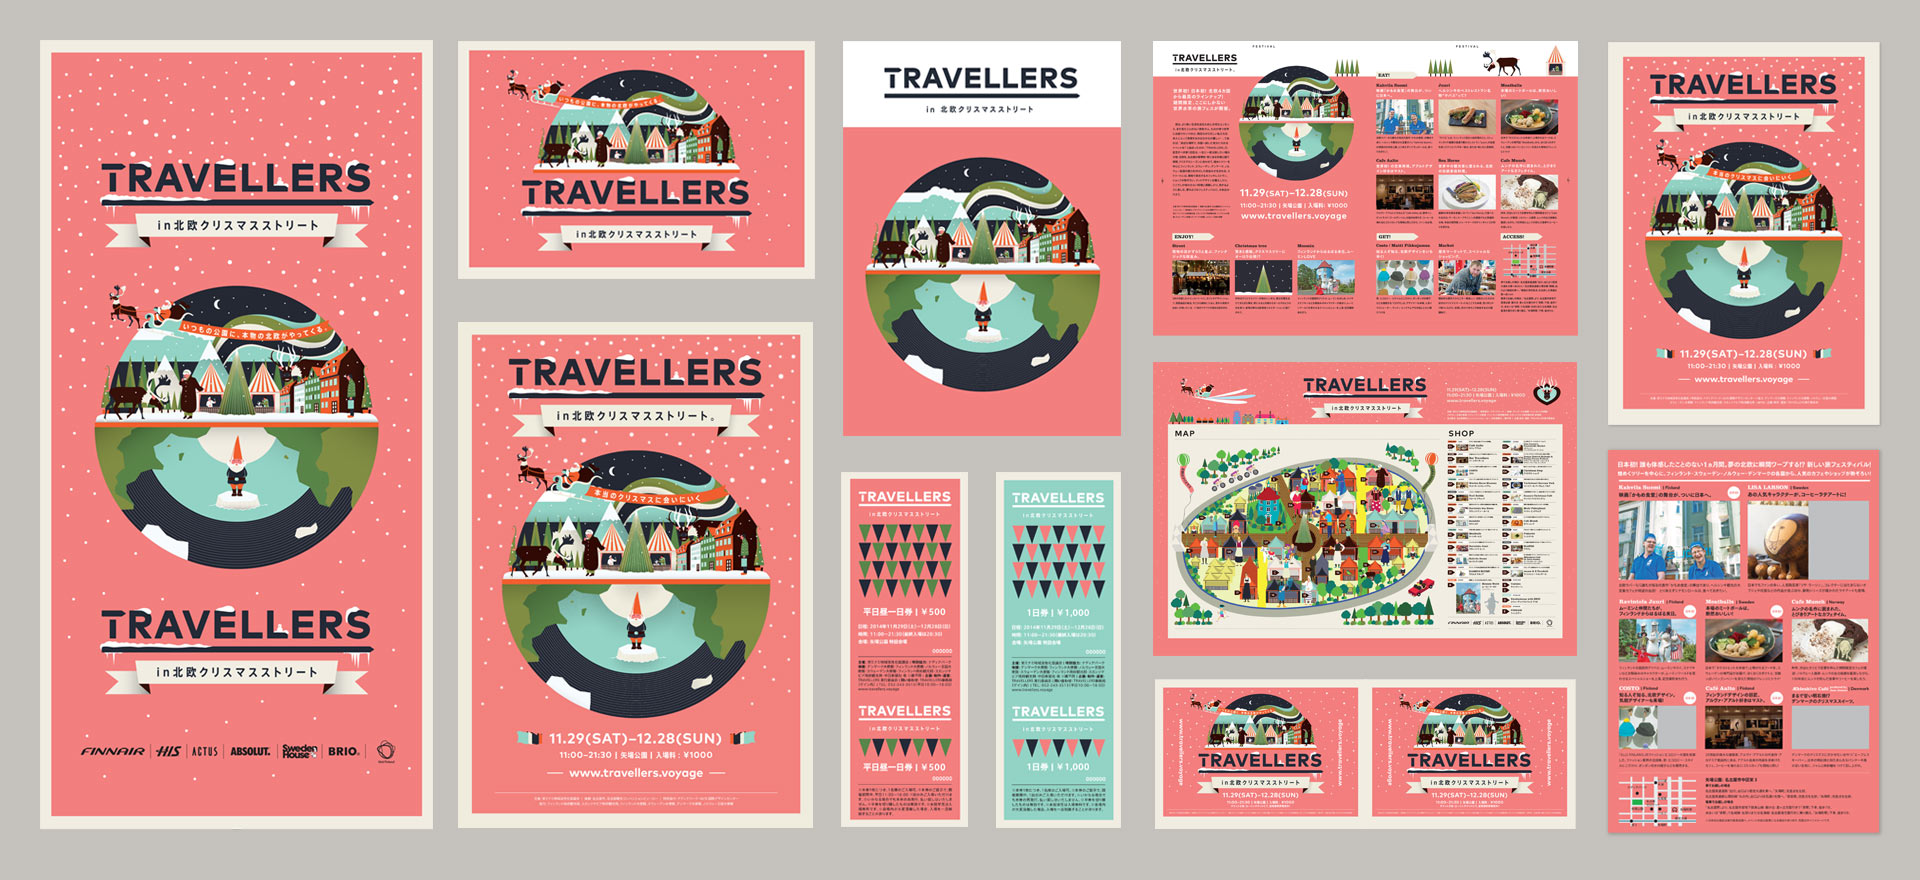 travellers_004